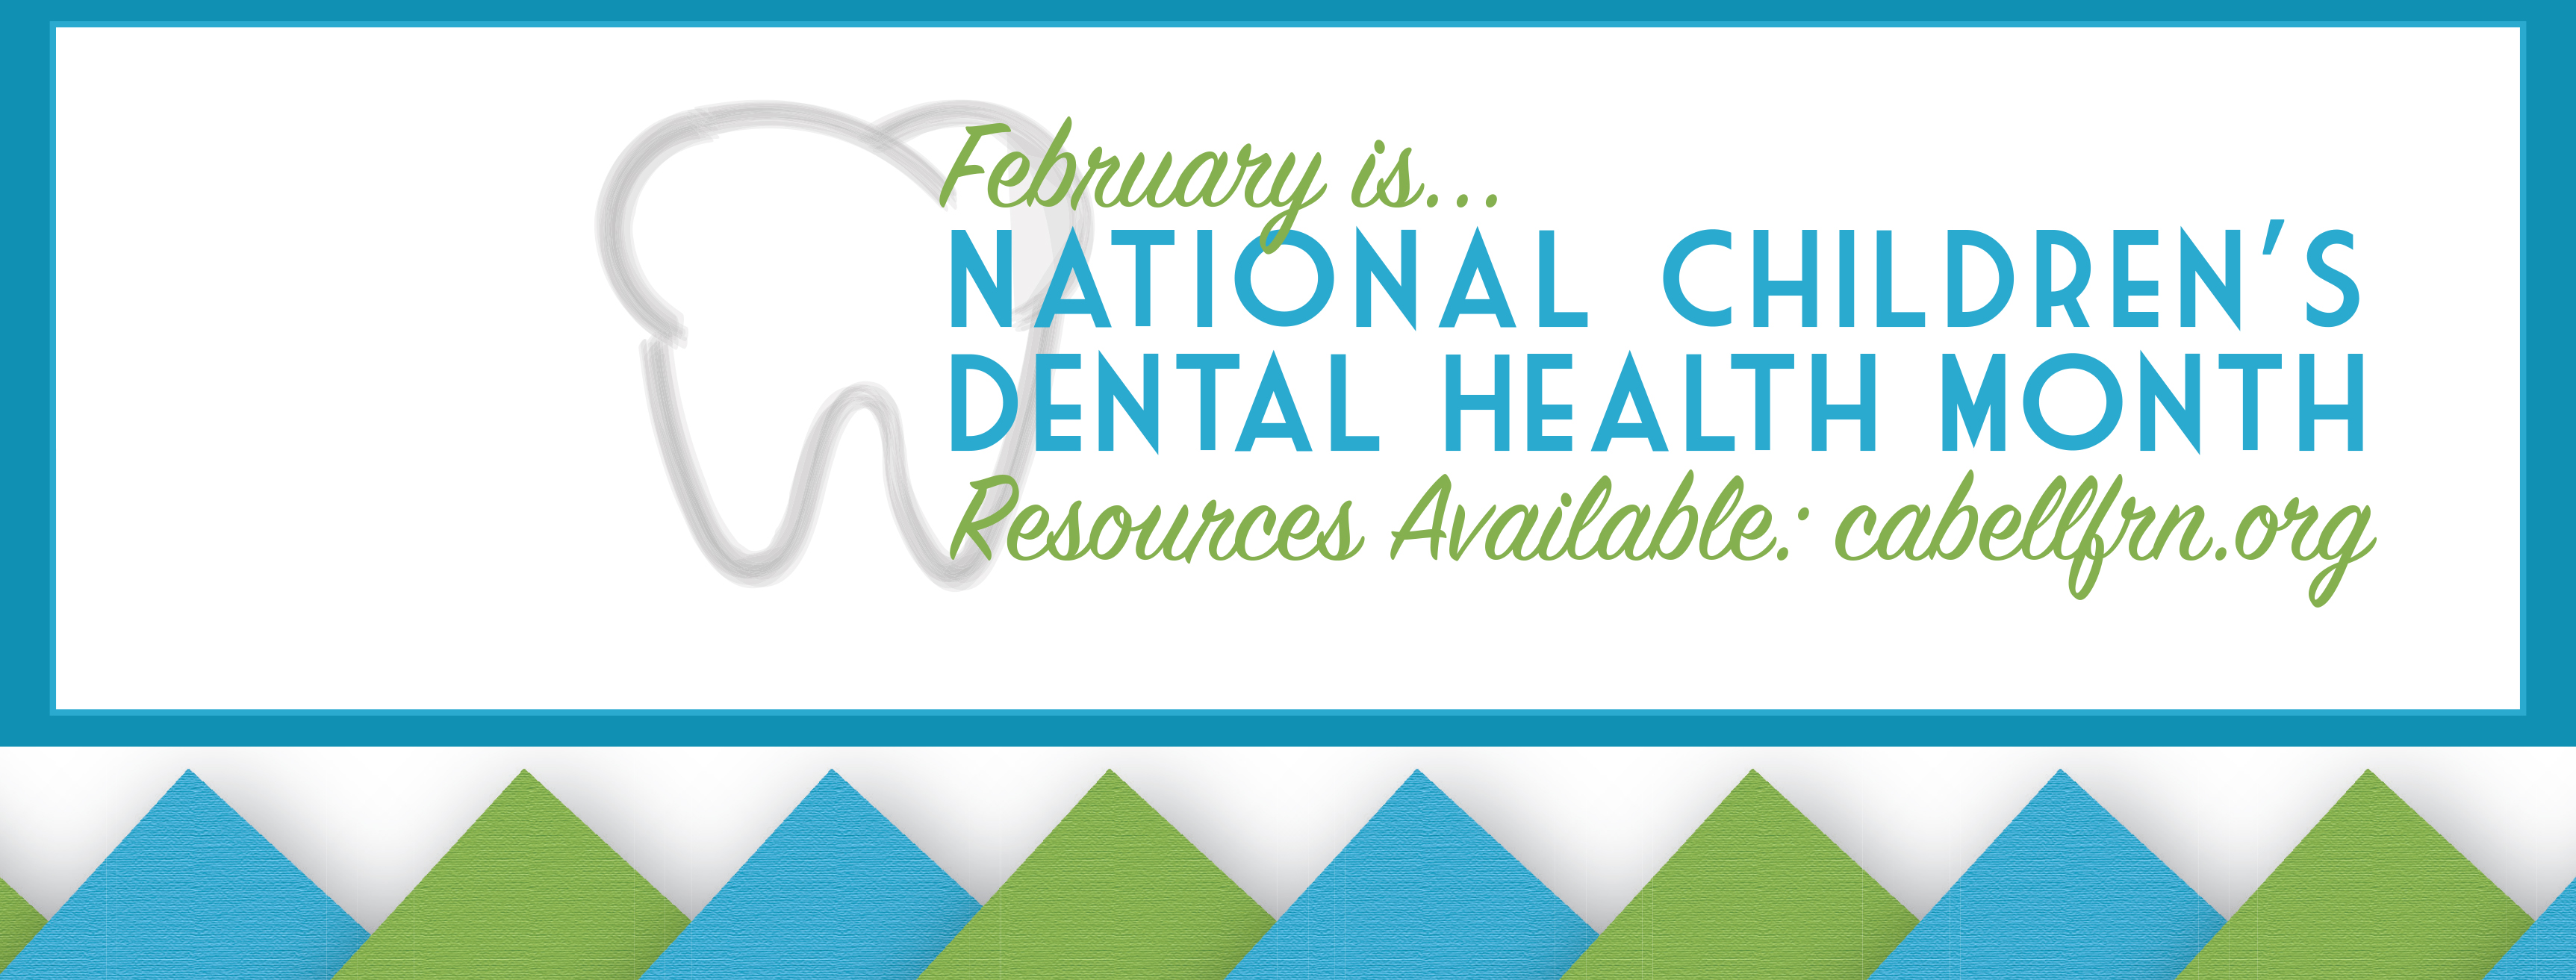 Just In Time To Celebrate 2017 National Childrens Dental Health Month Cabell County Family Resource Network CCFRN Is Proud Launch Our Resources For